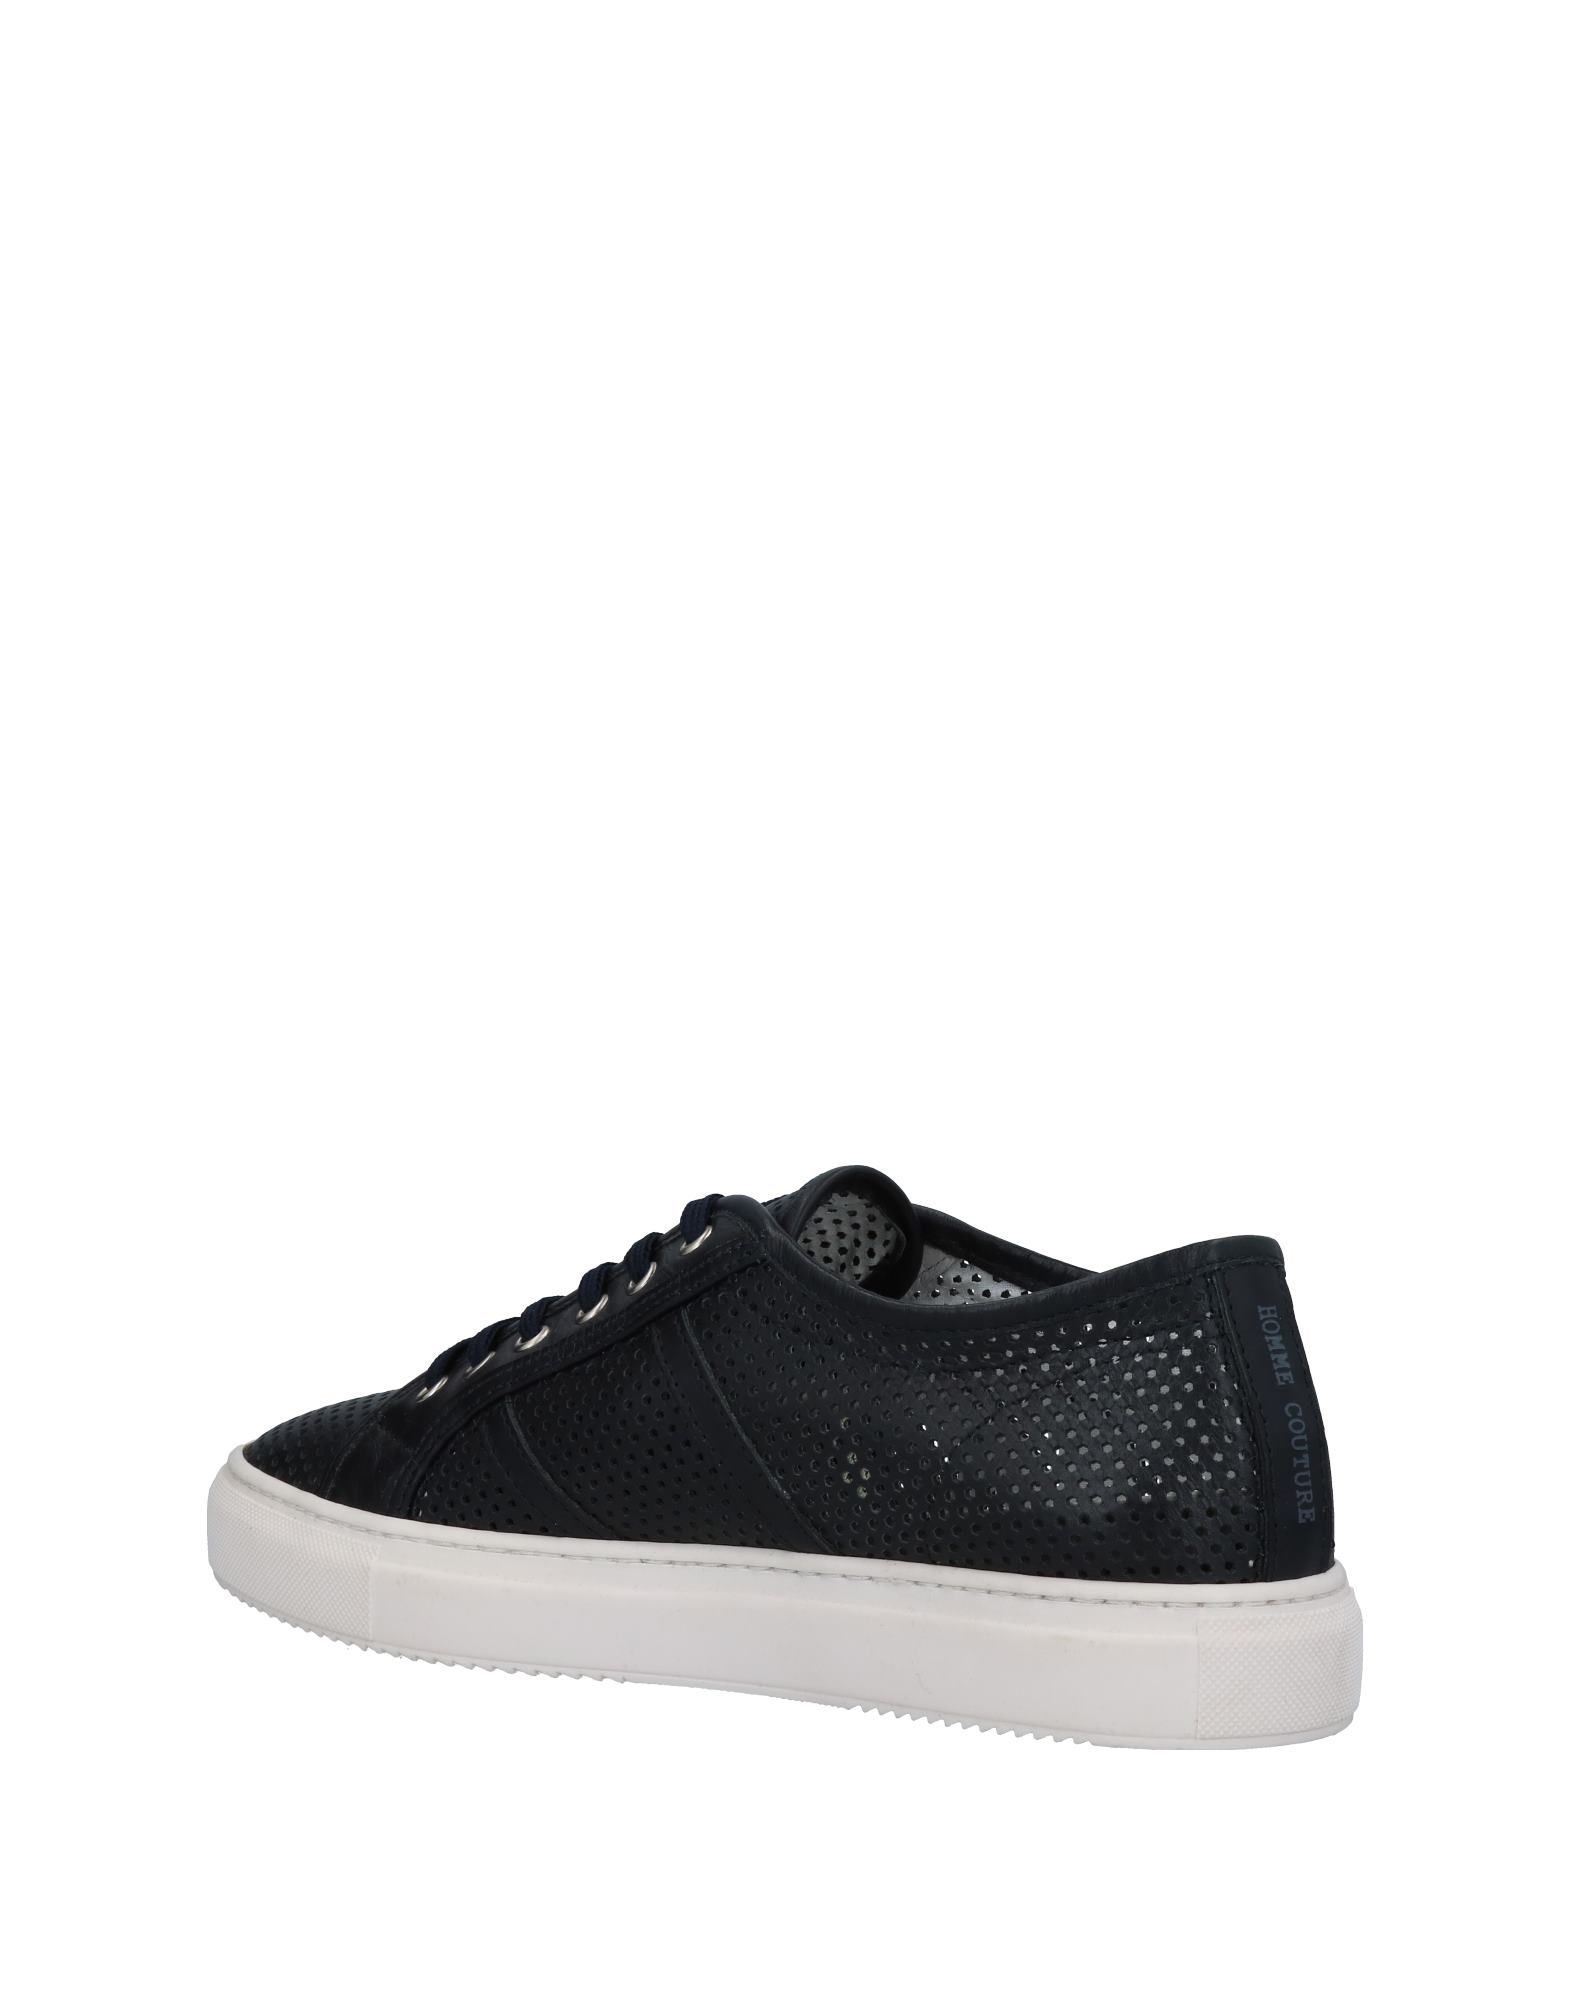 Sneakers Daniele Alessandrini Homme Homme - Sneakers Daniele Alessandrini Homme sur